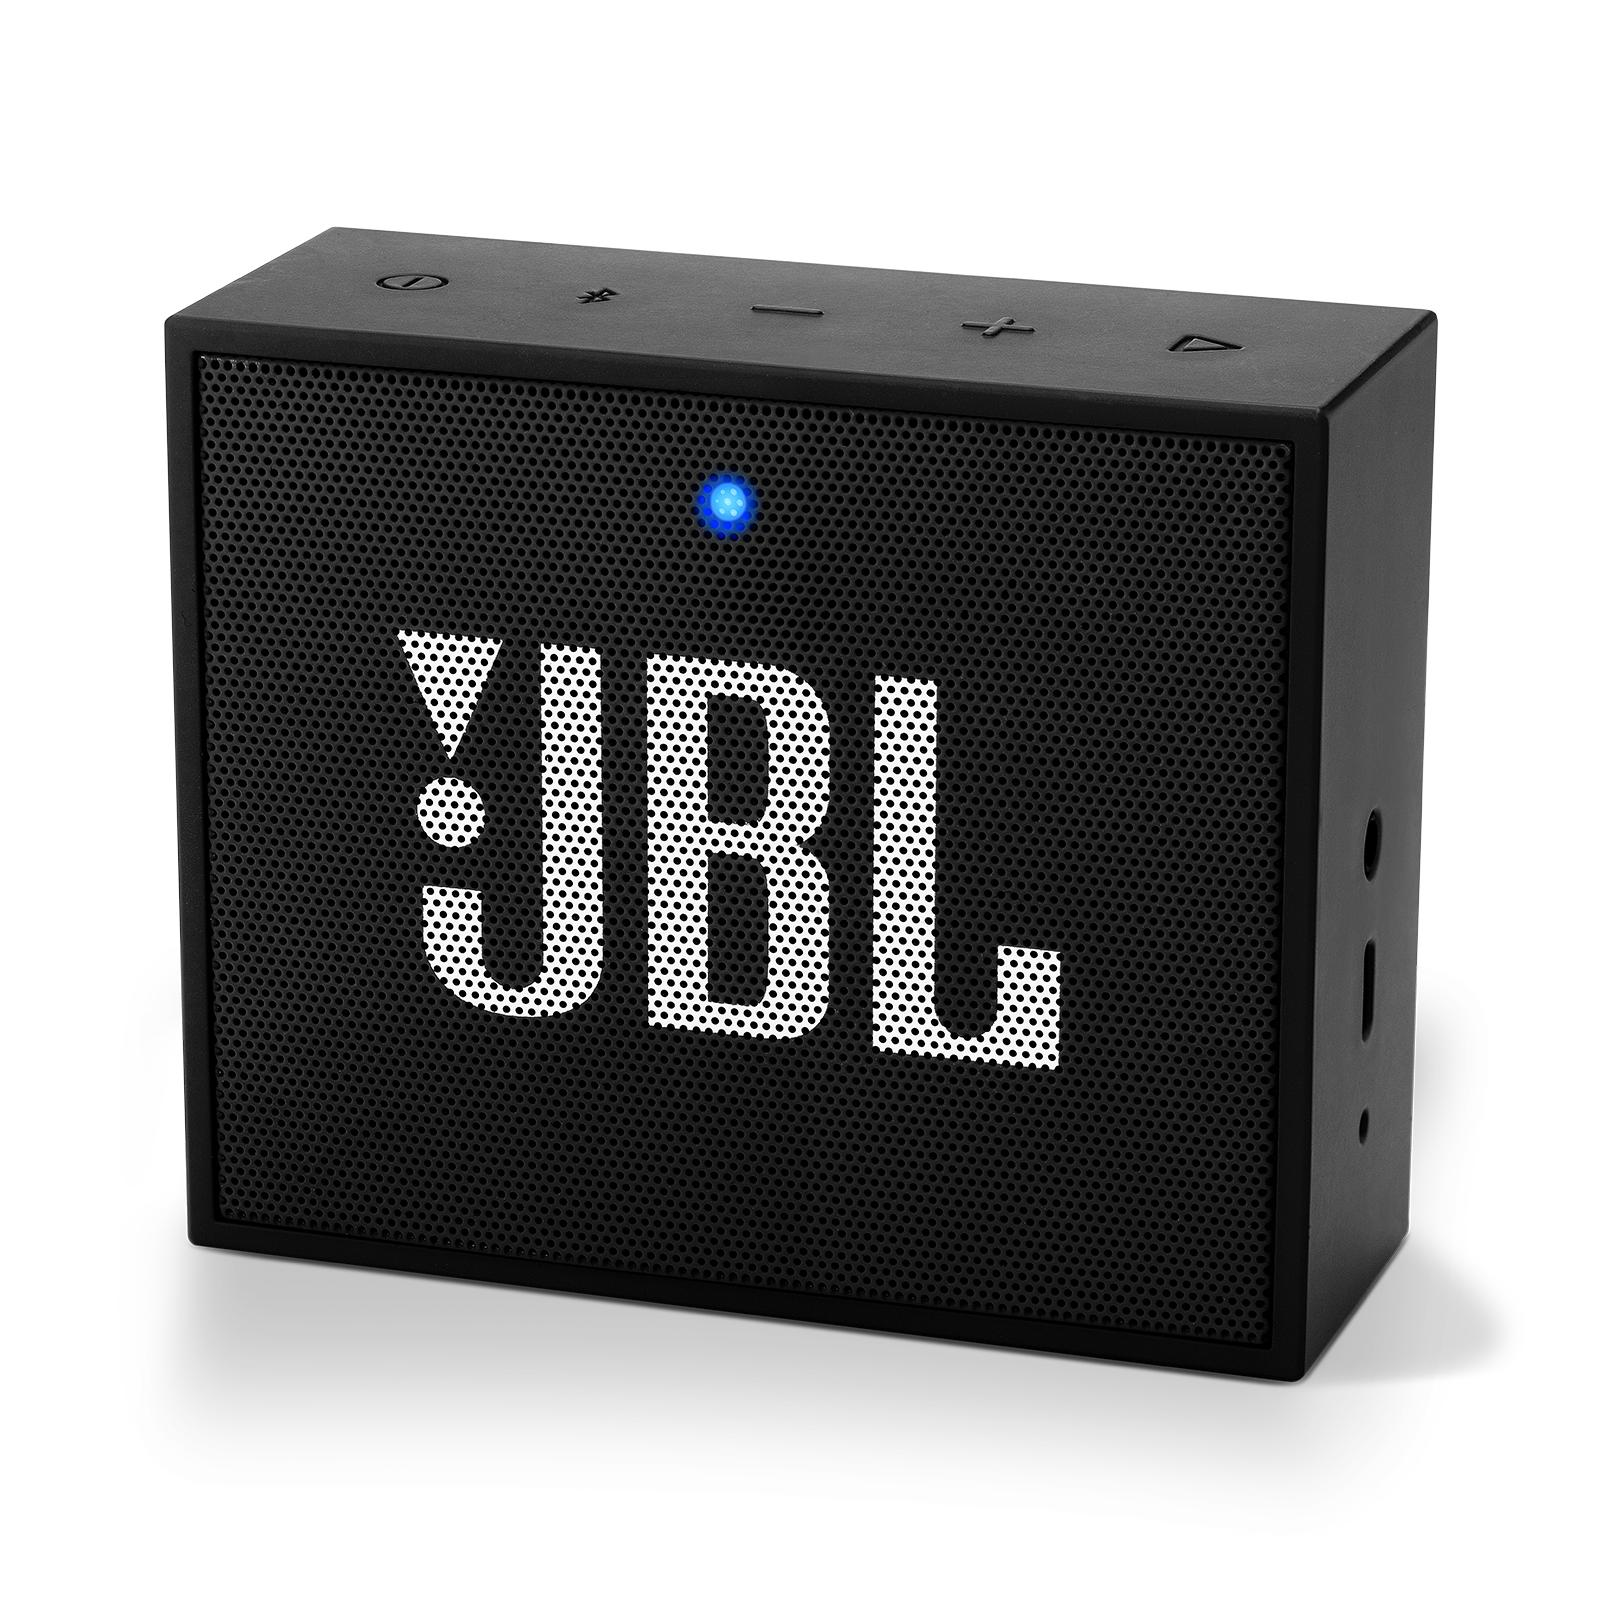 Jbl Philippines Tv Speakers For Sale Prices Reviews Lazada Clip 2 Bluetooth Speaker Grey Go Plus Portable